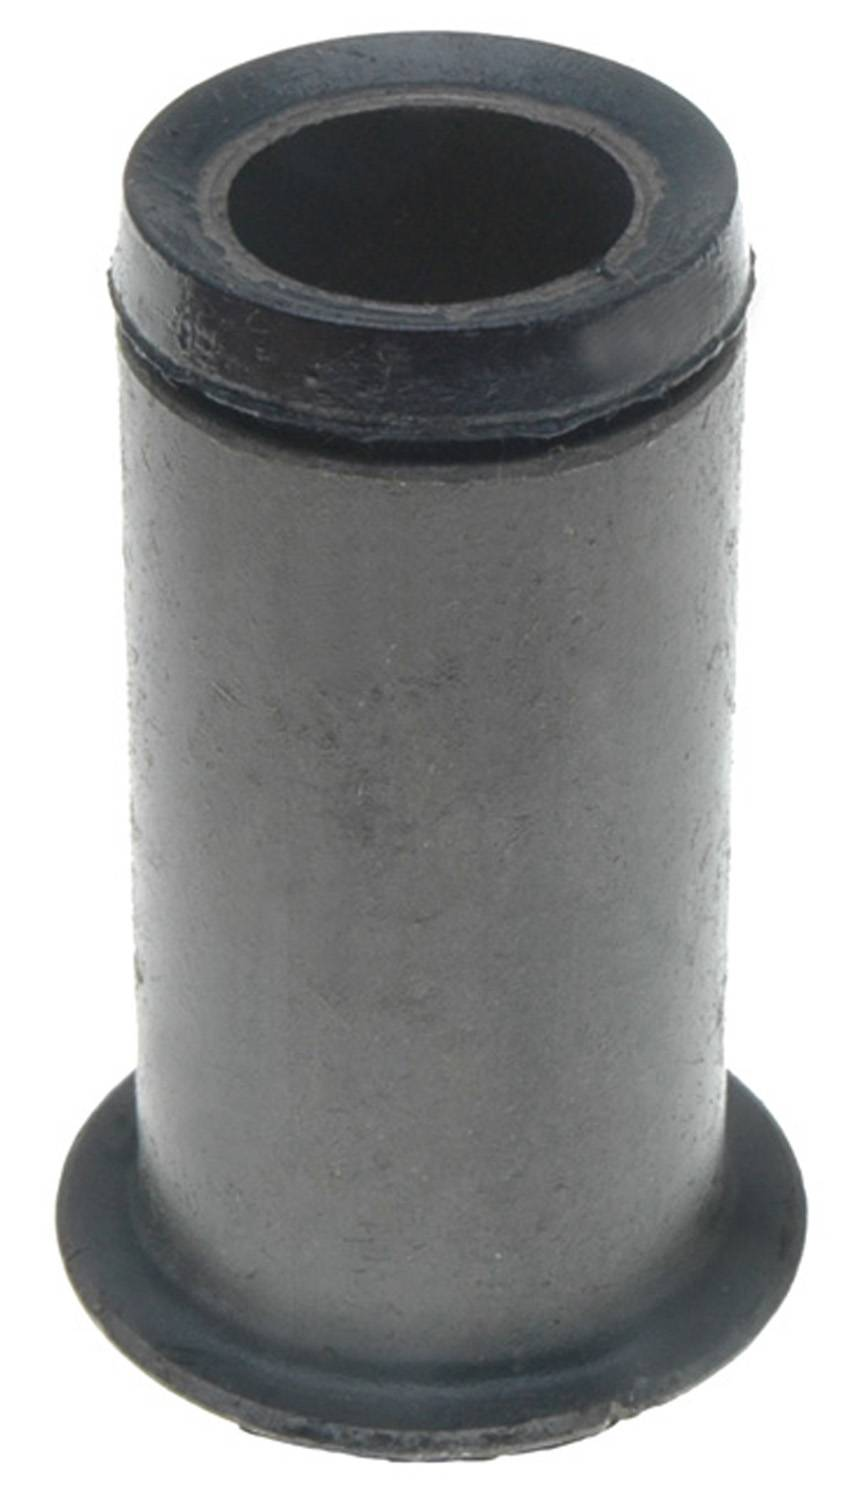 ACDELCO PROFESSIONAL - Steering Idler Arm Bushing - DCC 45G12004